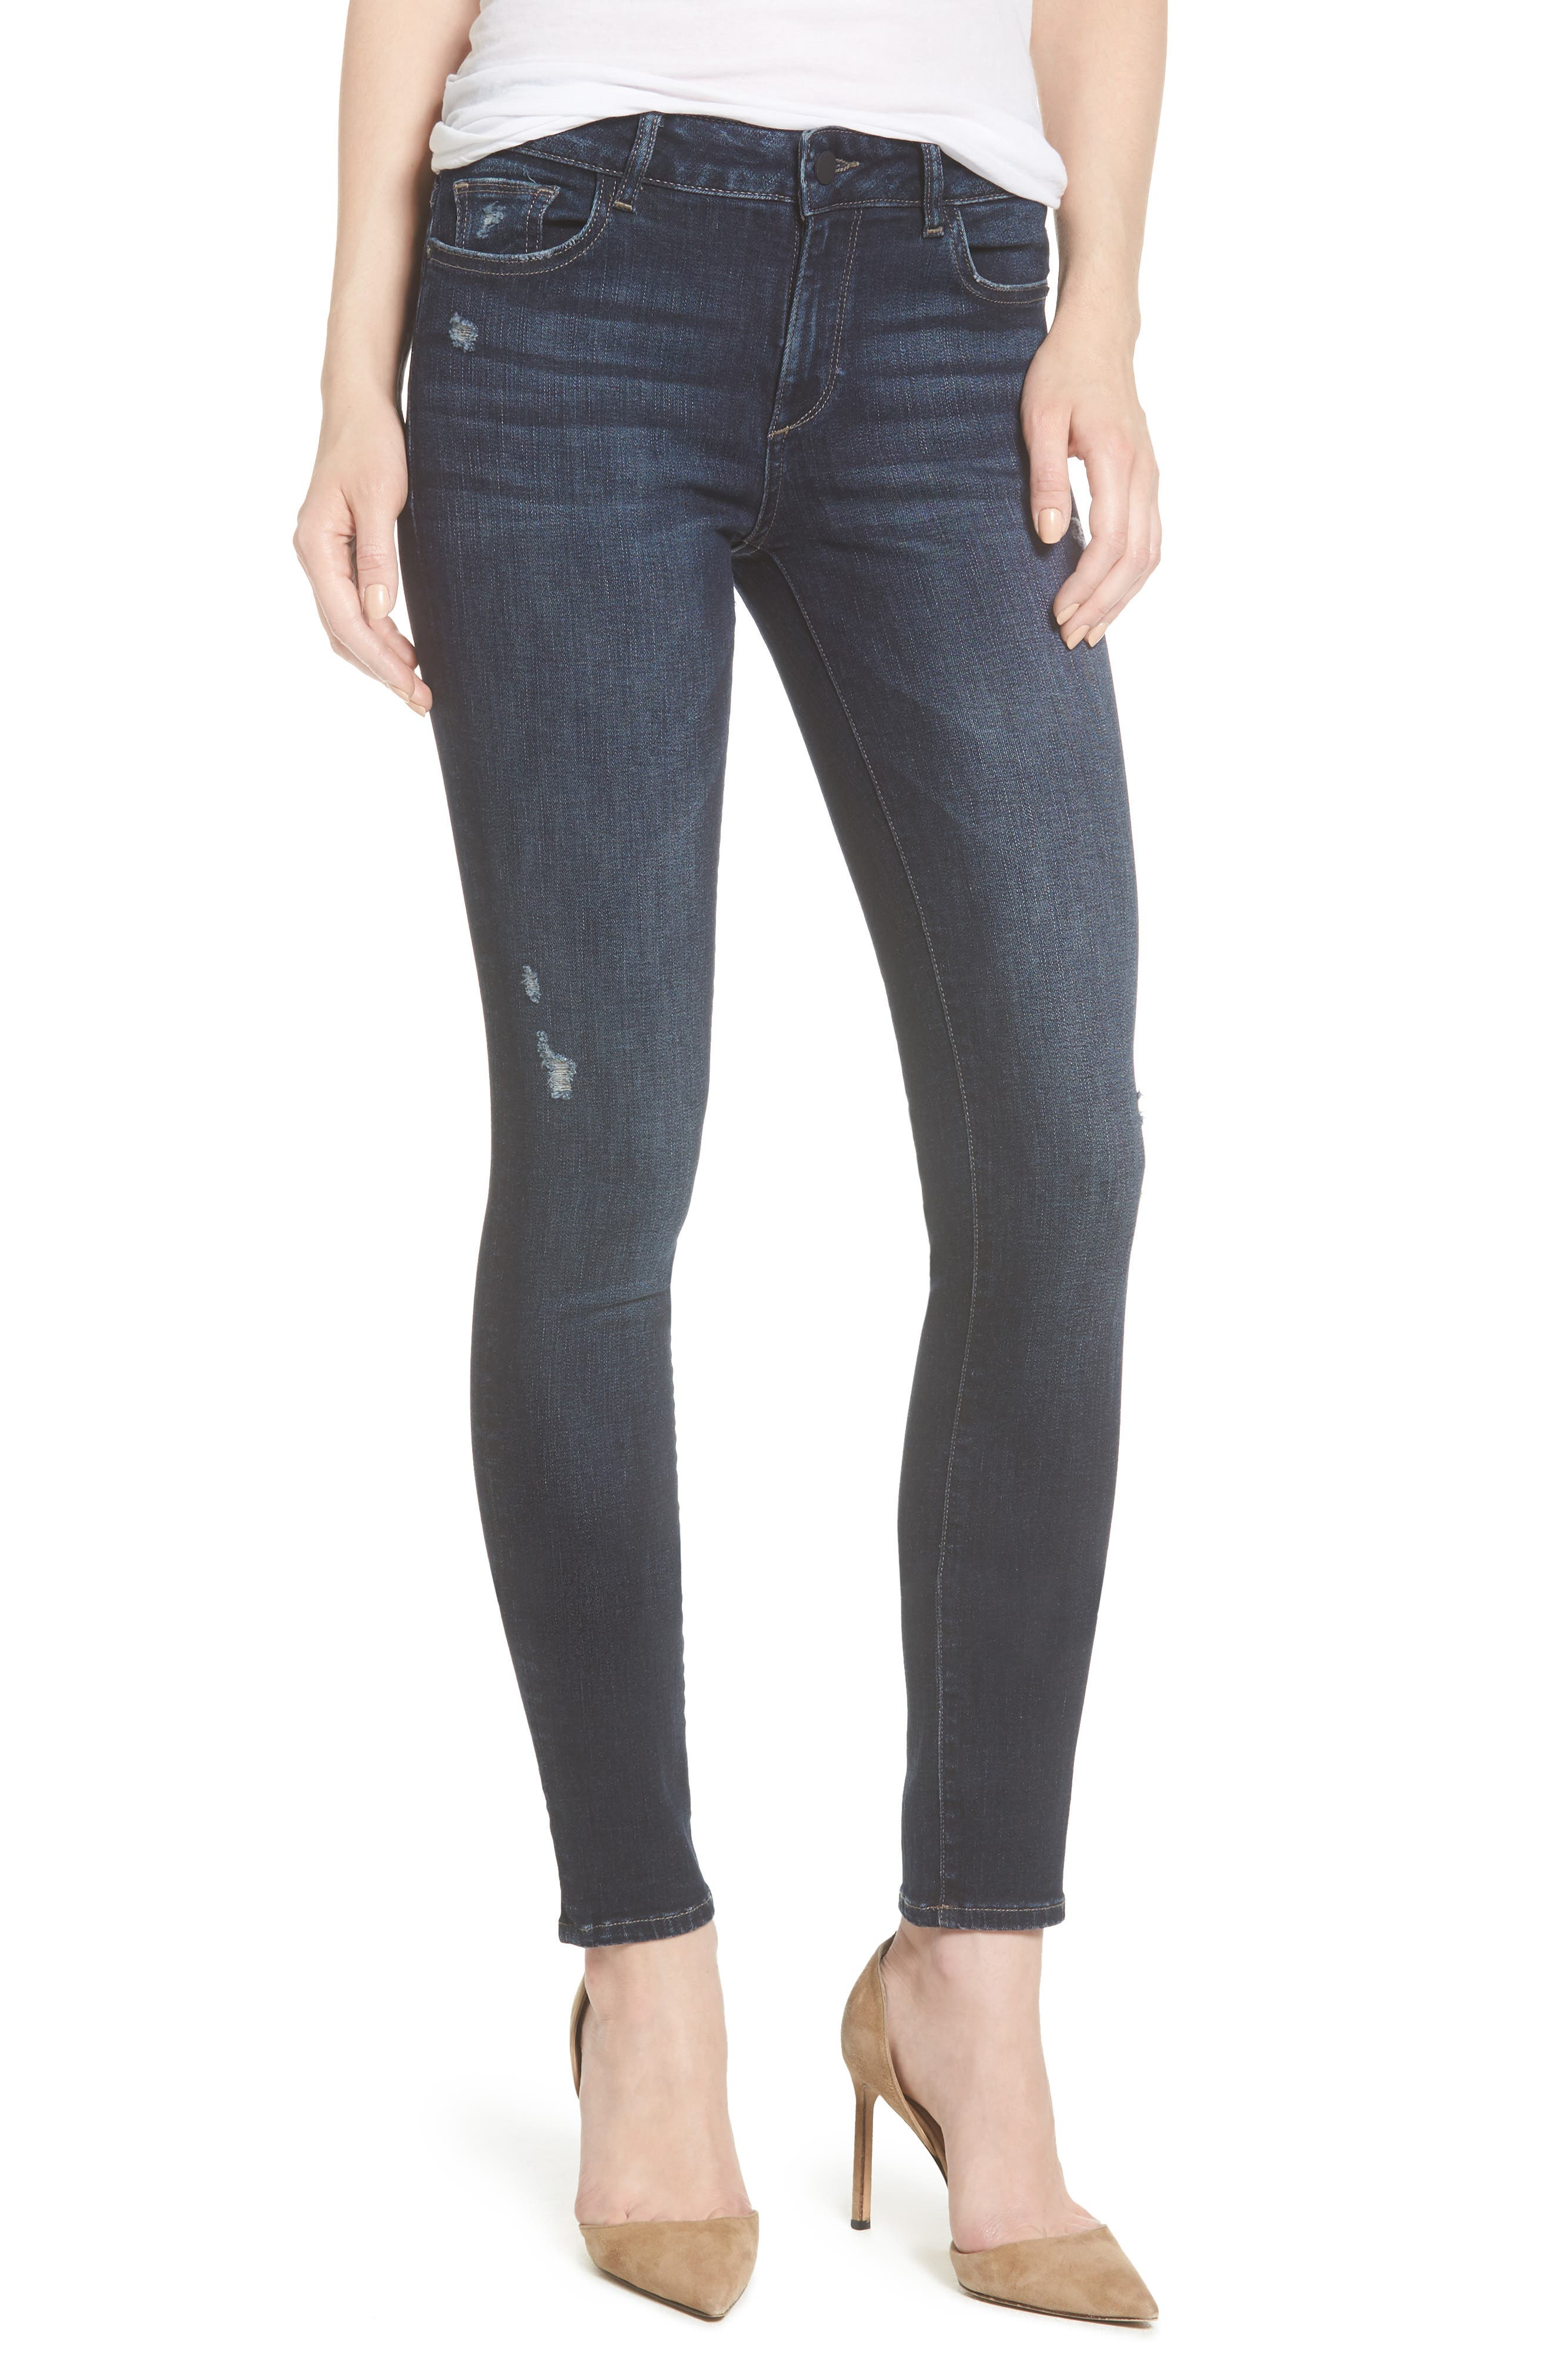 Main Image - DL1961 Florence Instasculpt Skinny Jeans (Darcy)